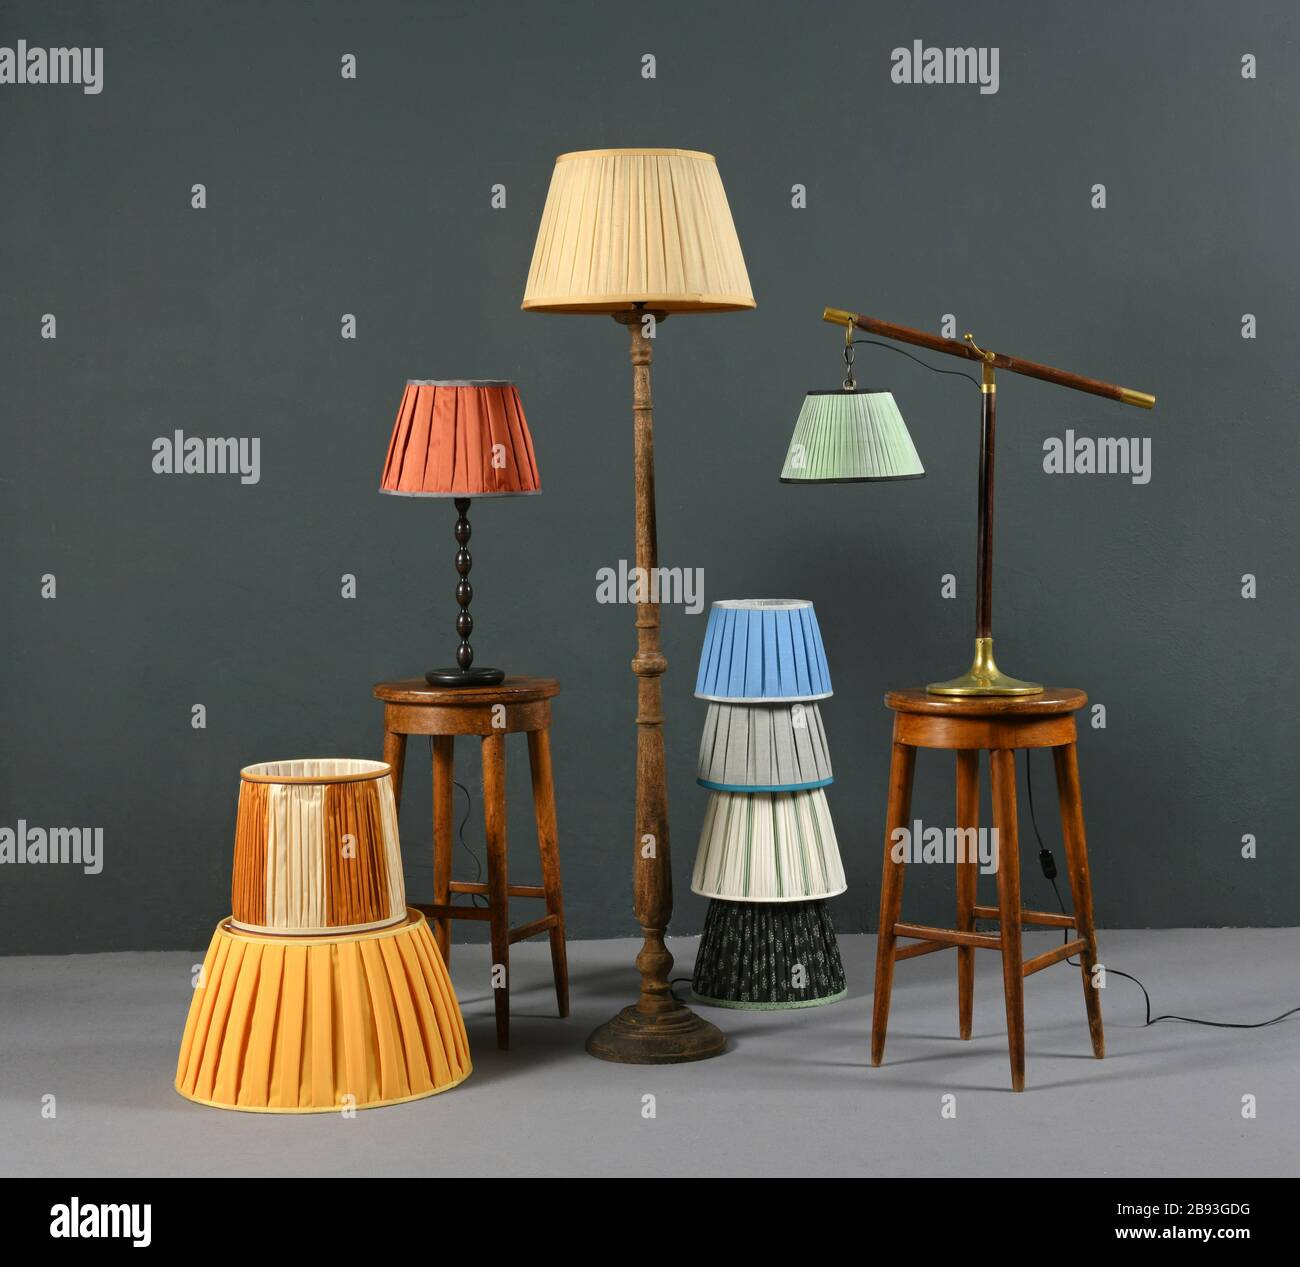 Anglepoise Table Lamp Stock Photos Anglepoise Table Lamp Stock